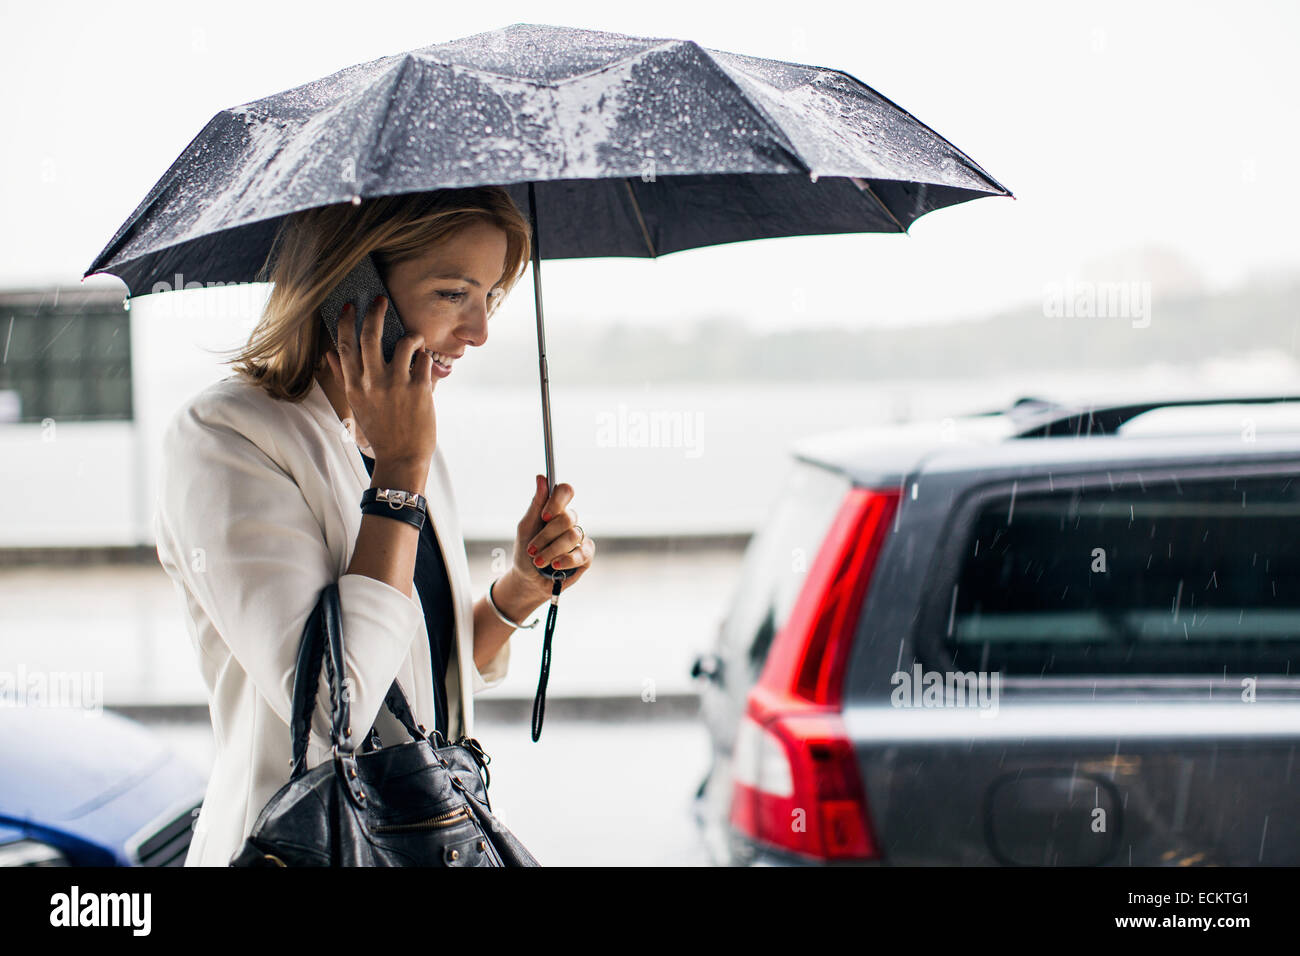 Businesswoman talking on smart phone during rainy season in city - Stock Image